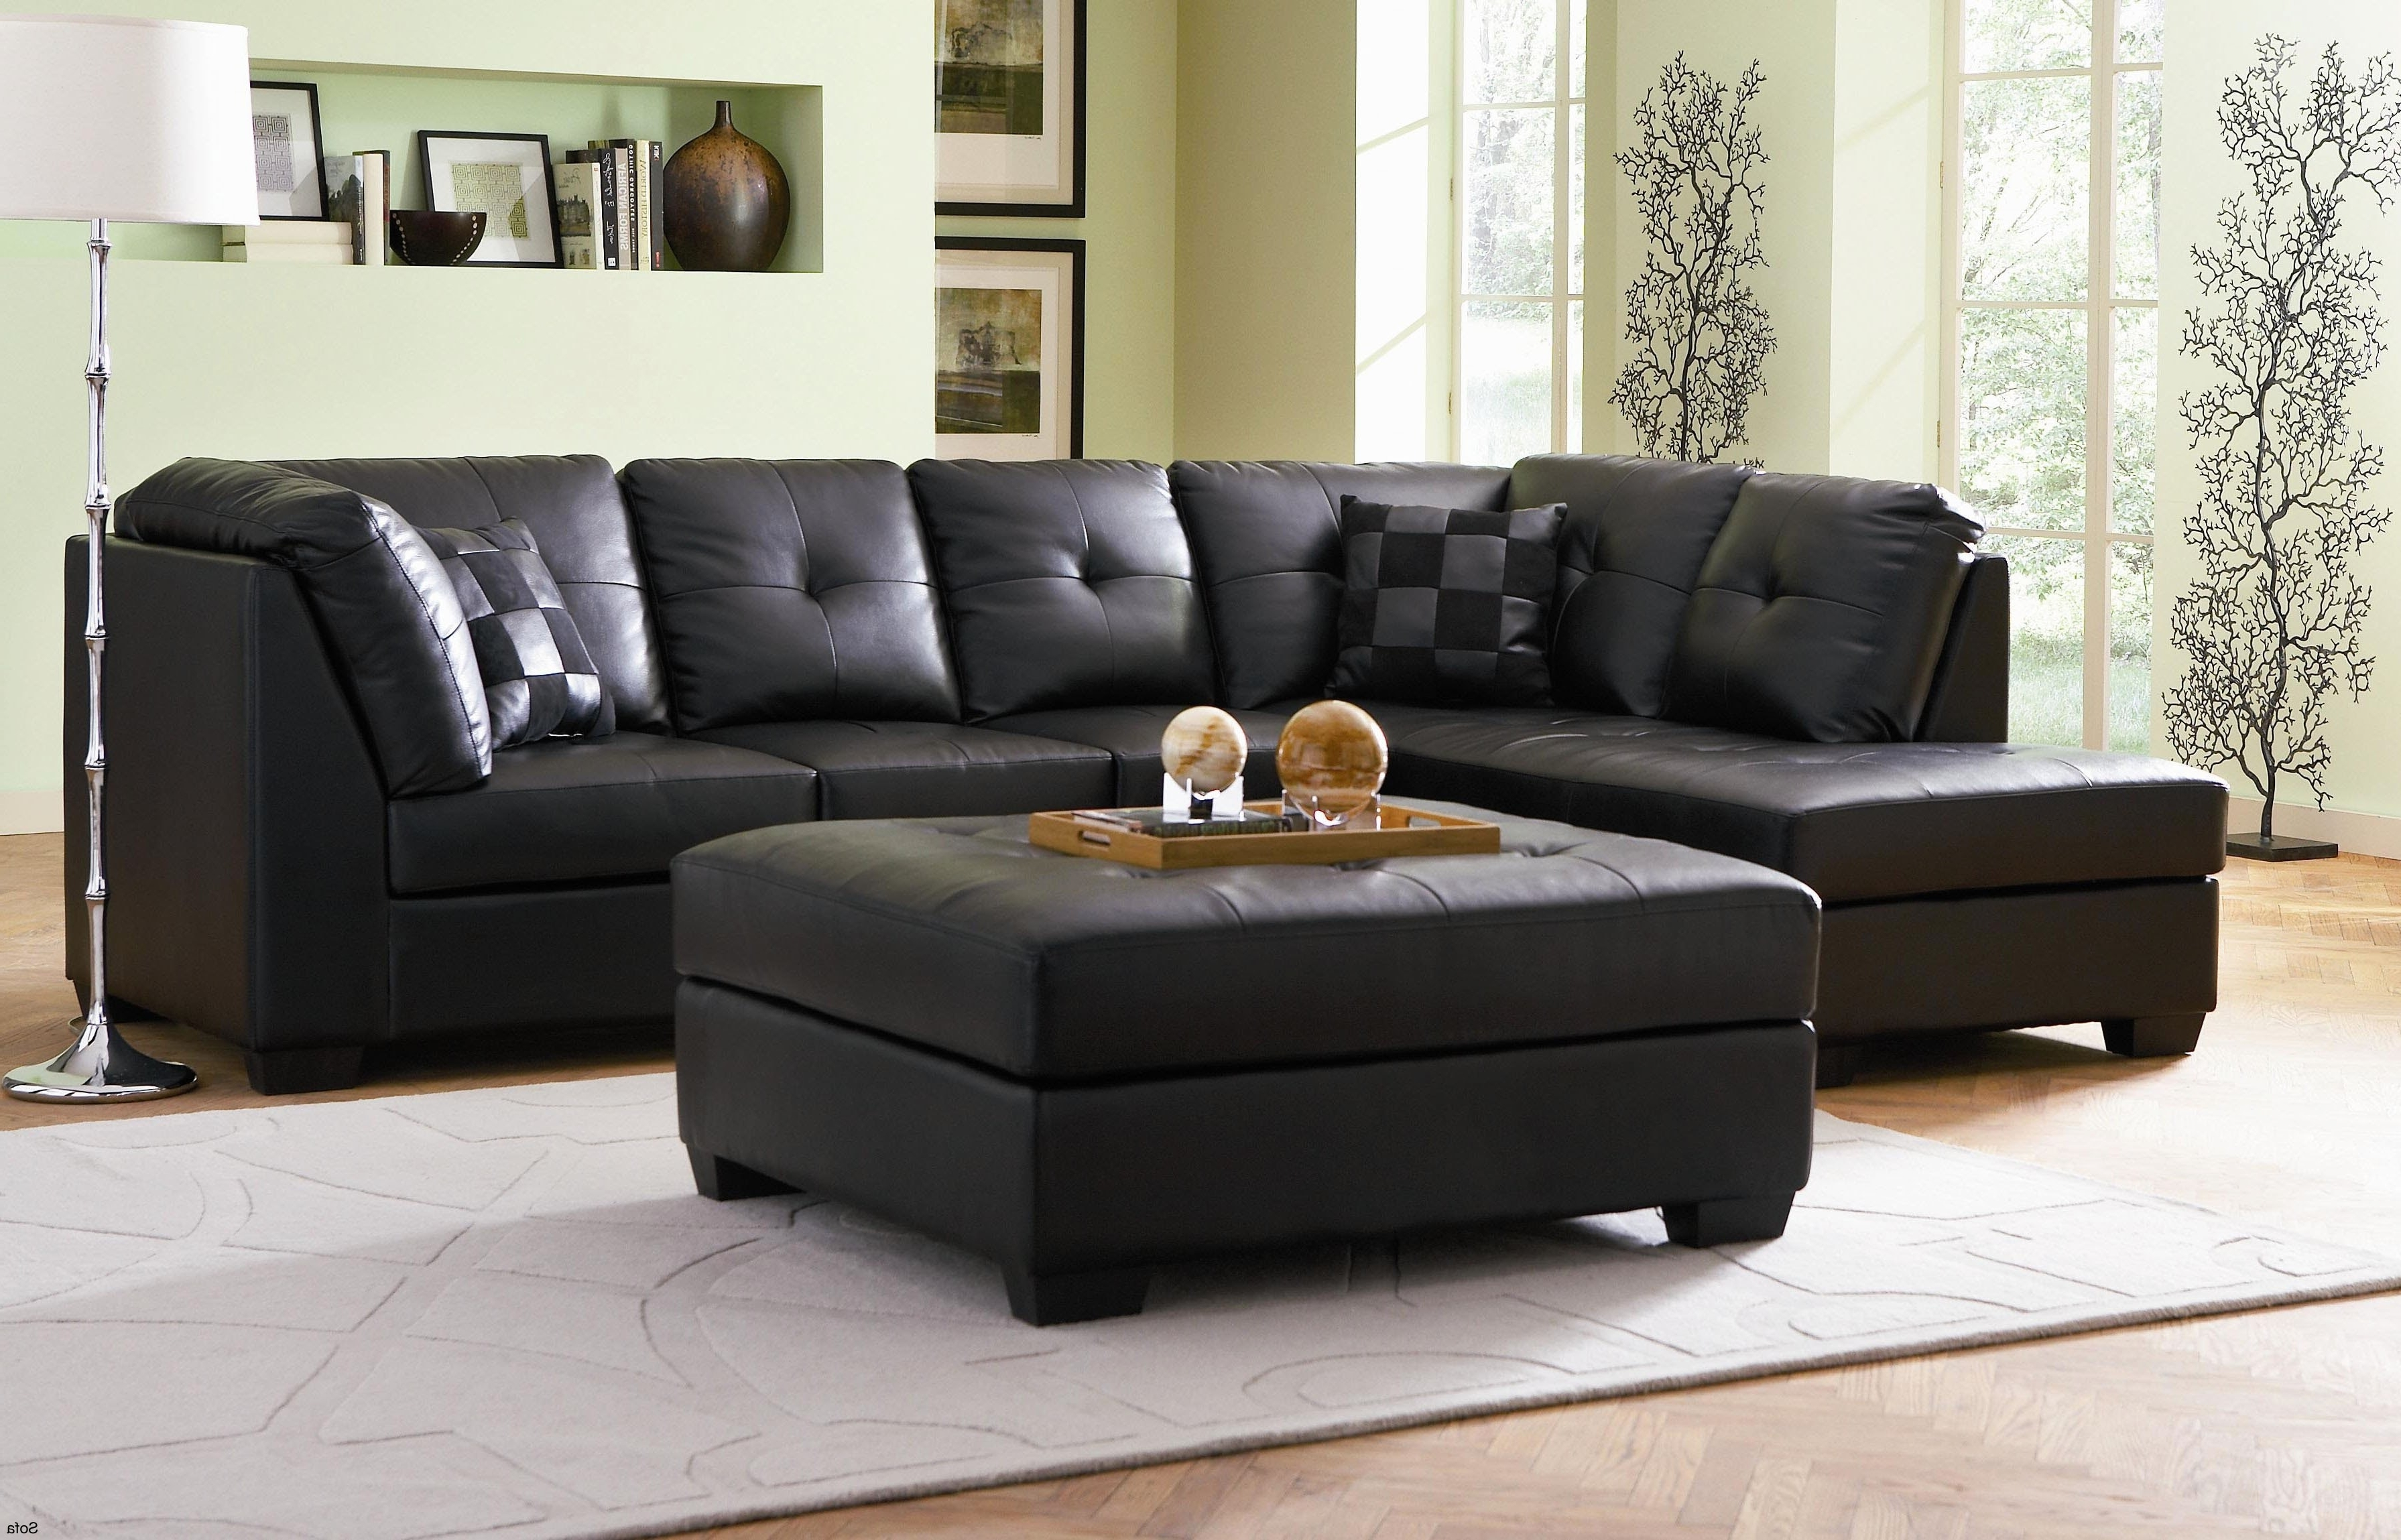 Well Liked Sectional Sofas At Amazon With Regard To Maxresdefault Amazon Sofa Set Cheap Sectional Sofas For Sale (View 20 of 20)